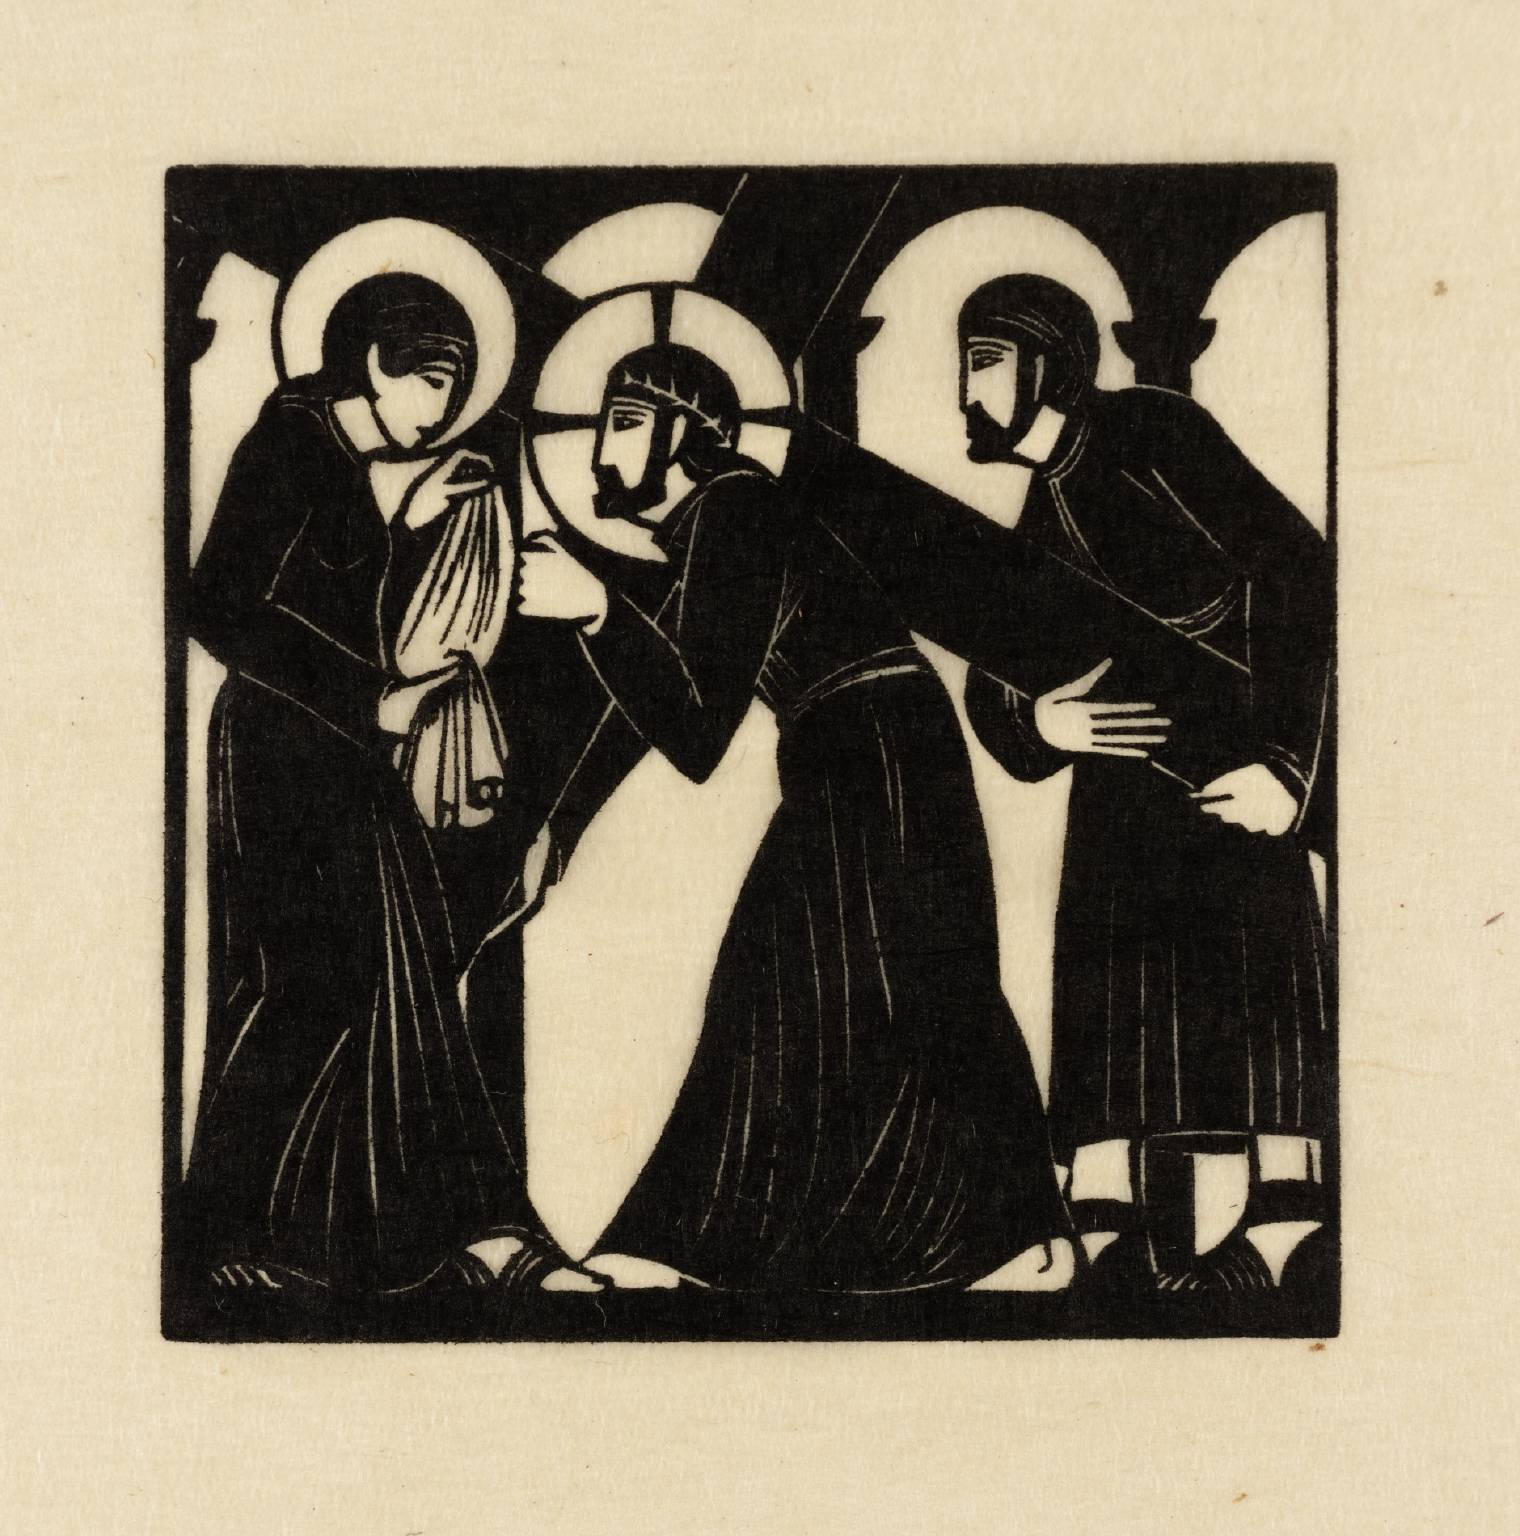 Jesus Meets Veronica 1917 Eric Gill 1882-1940 http://www.tate.org.uk/art/work/P08056